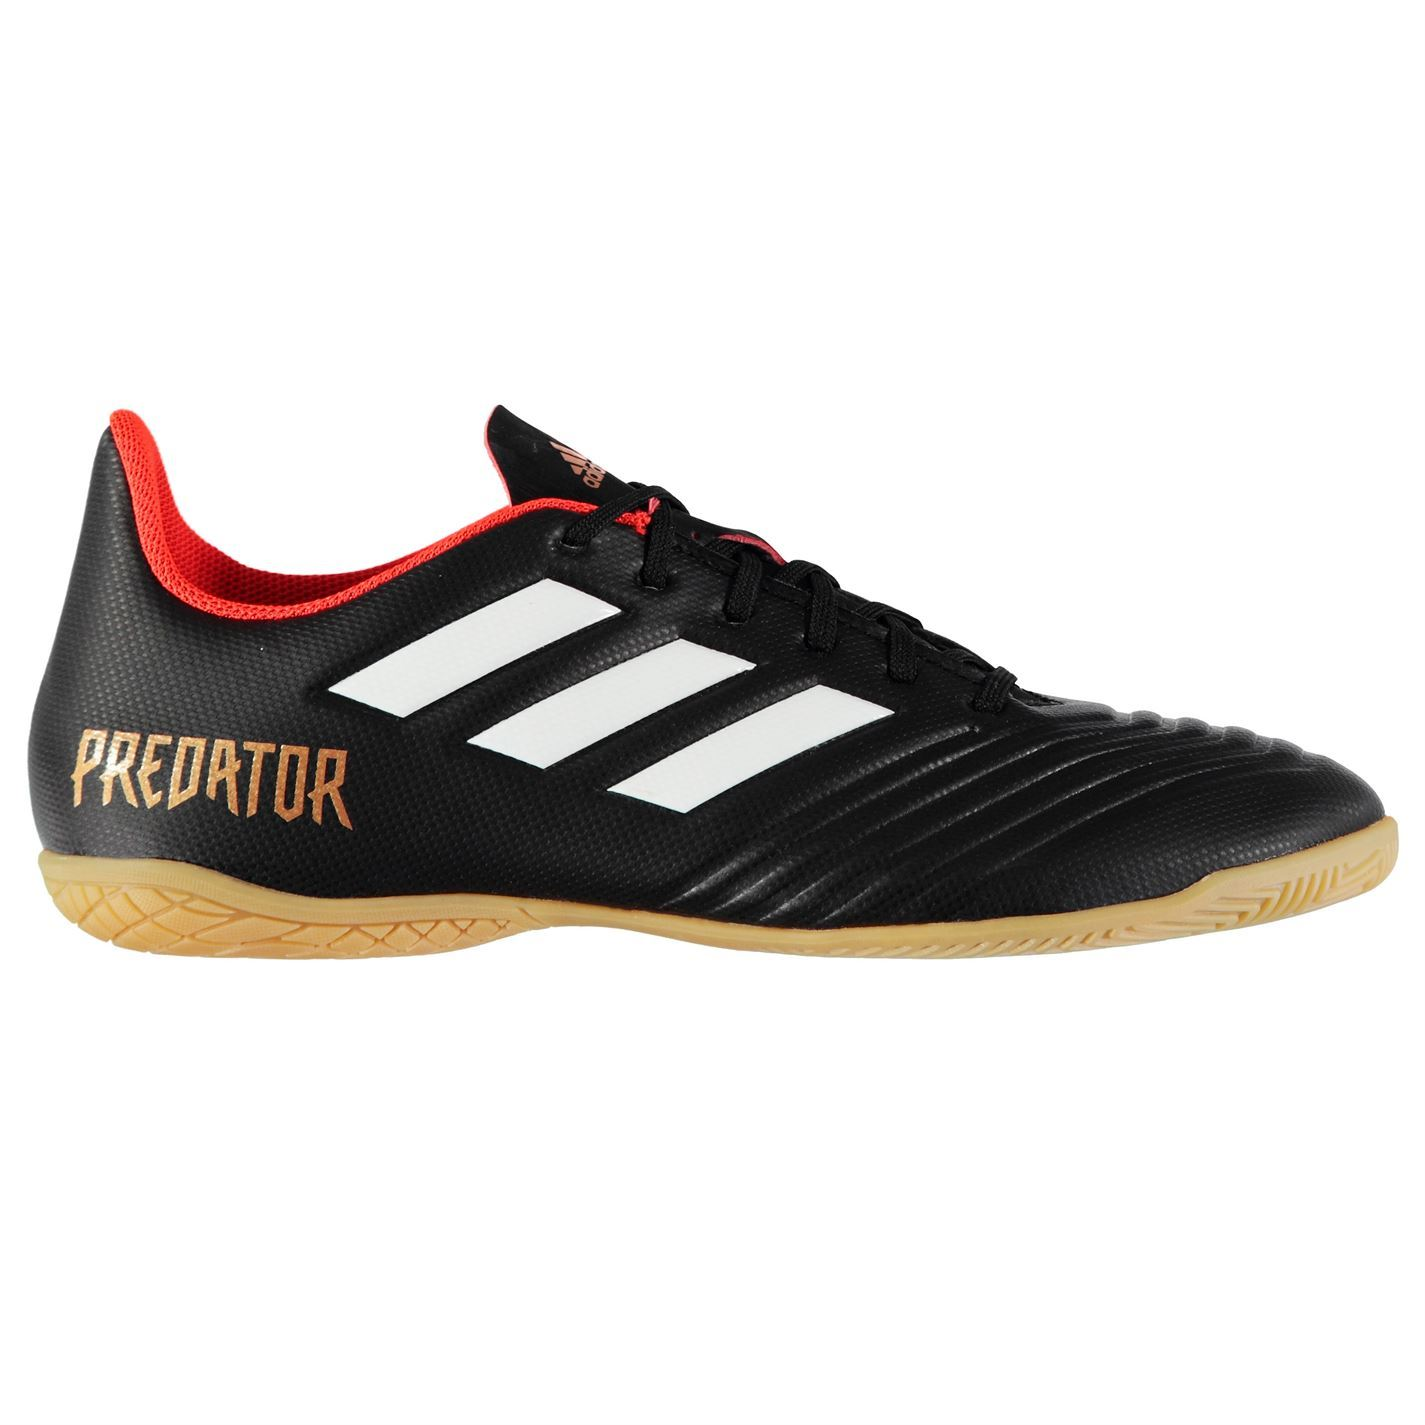 415867b3cb5 Details about adidas Predator Tango 18.4 Indoor Football Trainers Mens  Black Soccer Shoes